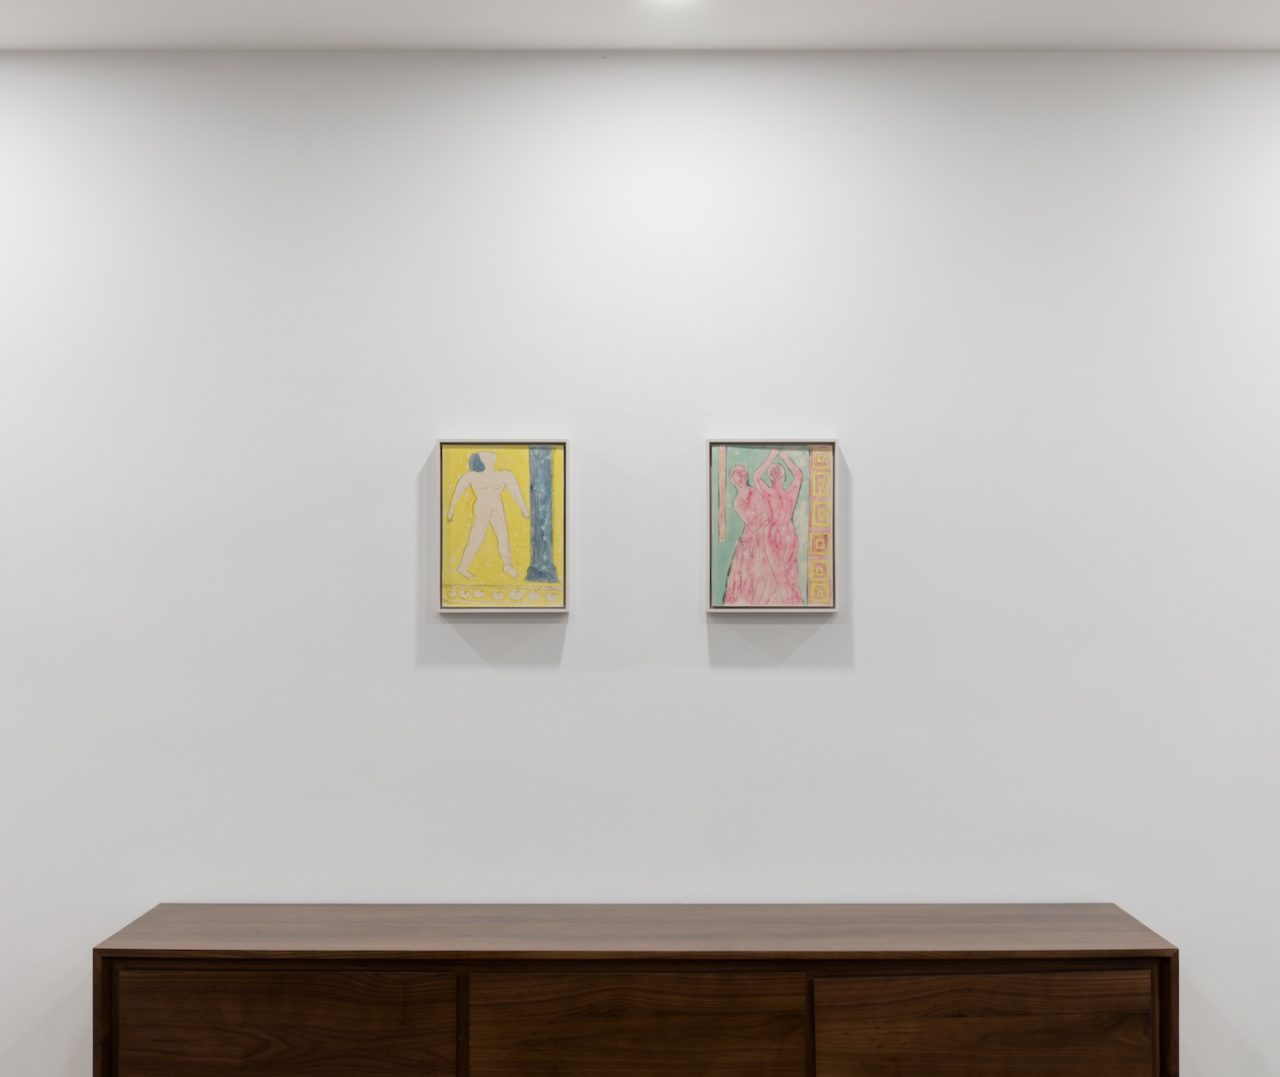 Fresco | Installation view, Ruby Sky Stiler, <i>Fresco</i>, 2019